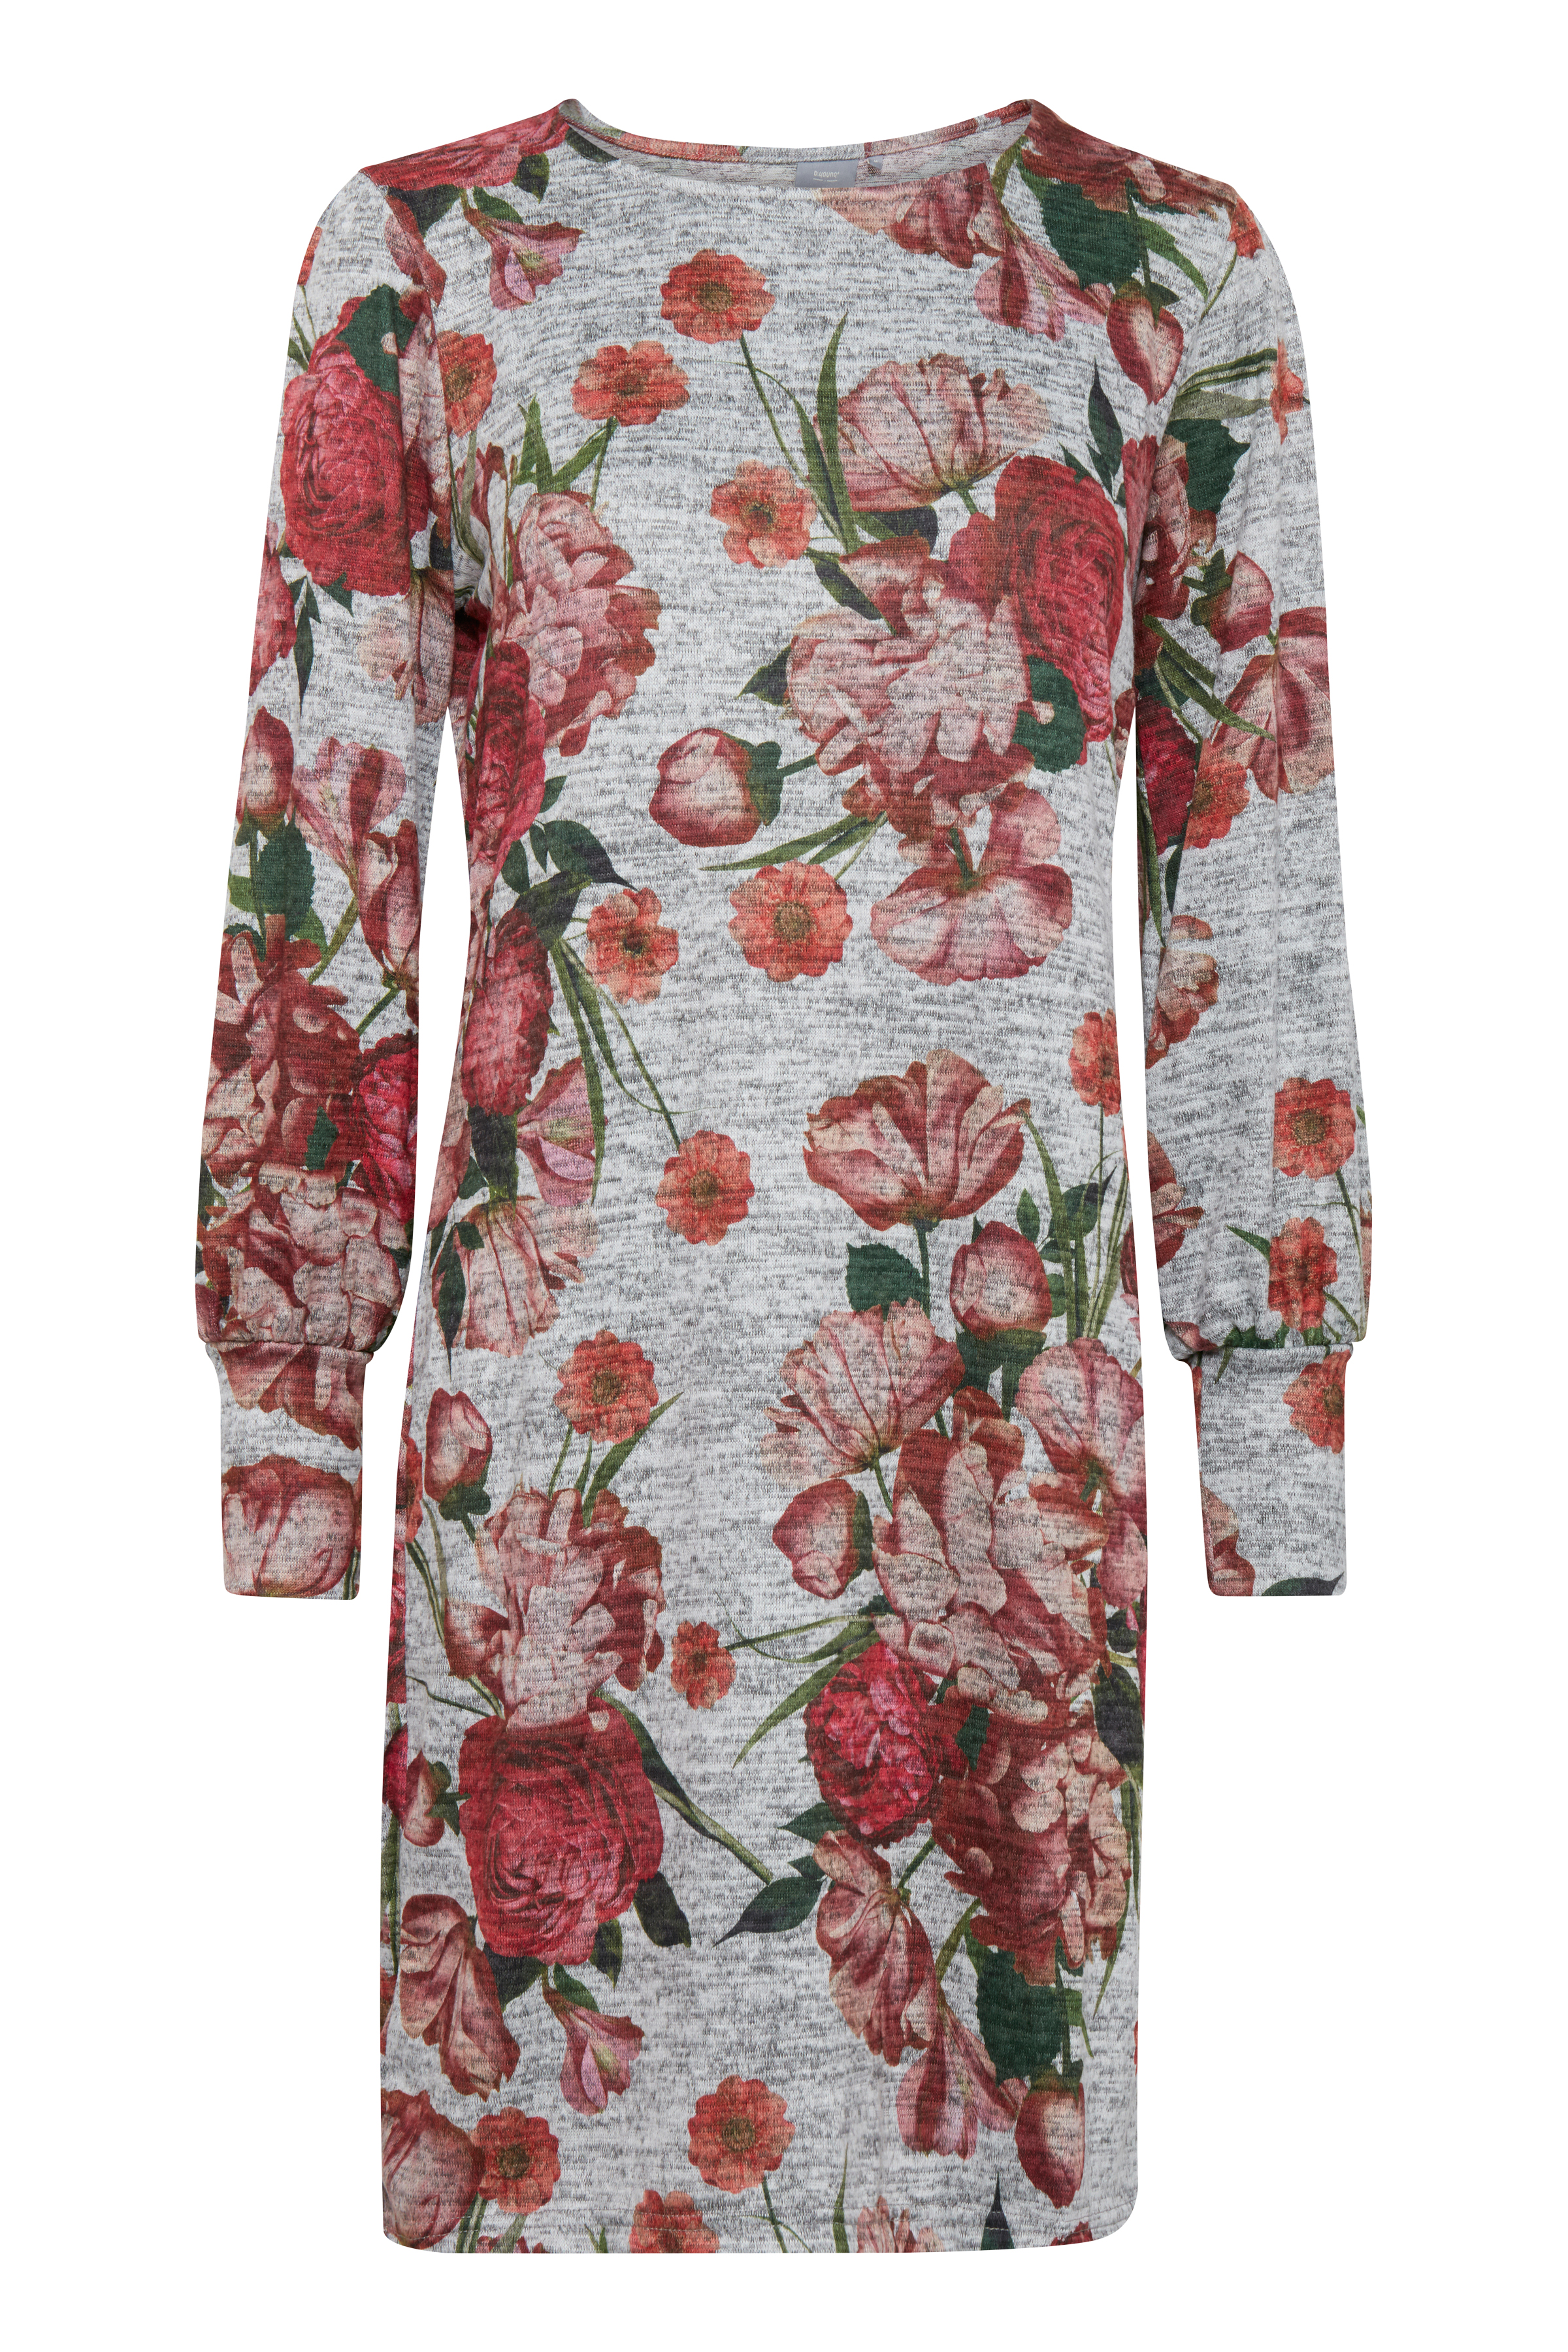 Jersey dress from b.young – Buy  Jersey dress from size XS-XXL here